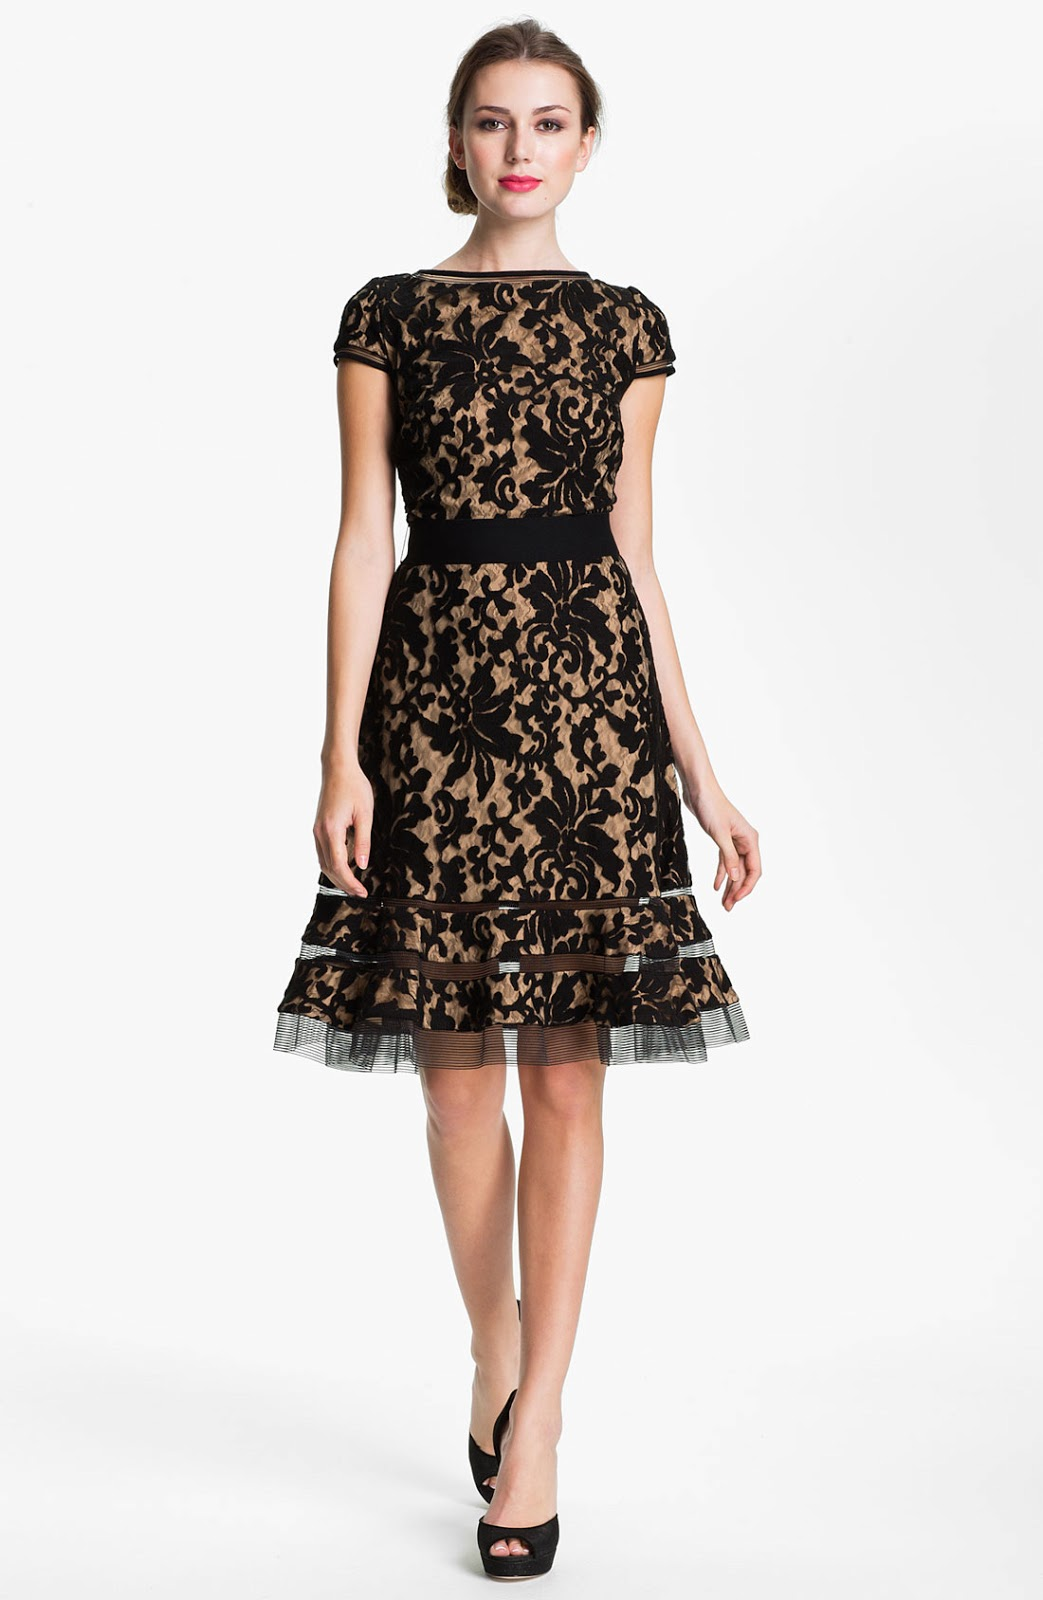 Shop for lace black dress online at Target. Free shipping on purchases over $35 and save 5% every day with your Target REDcard.